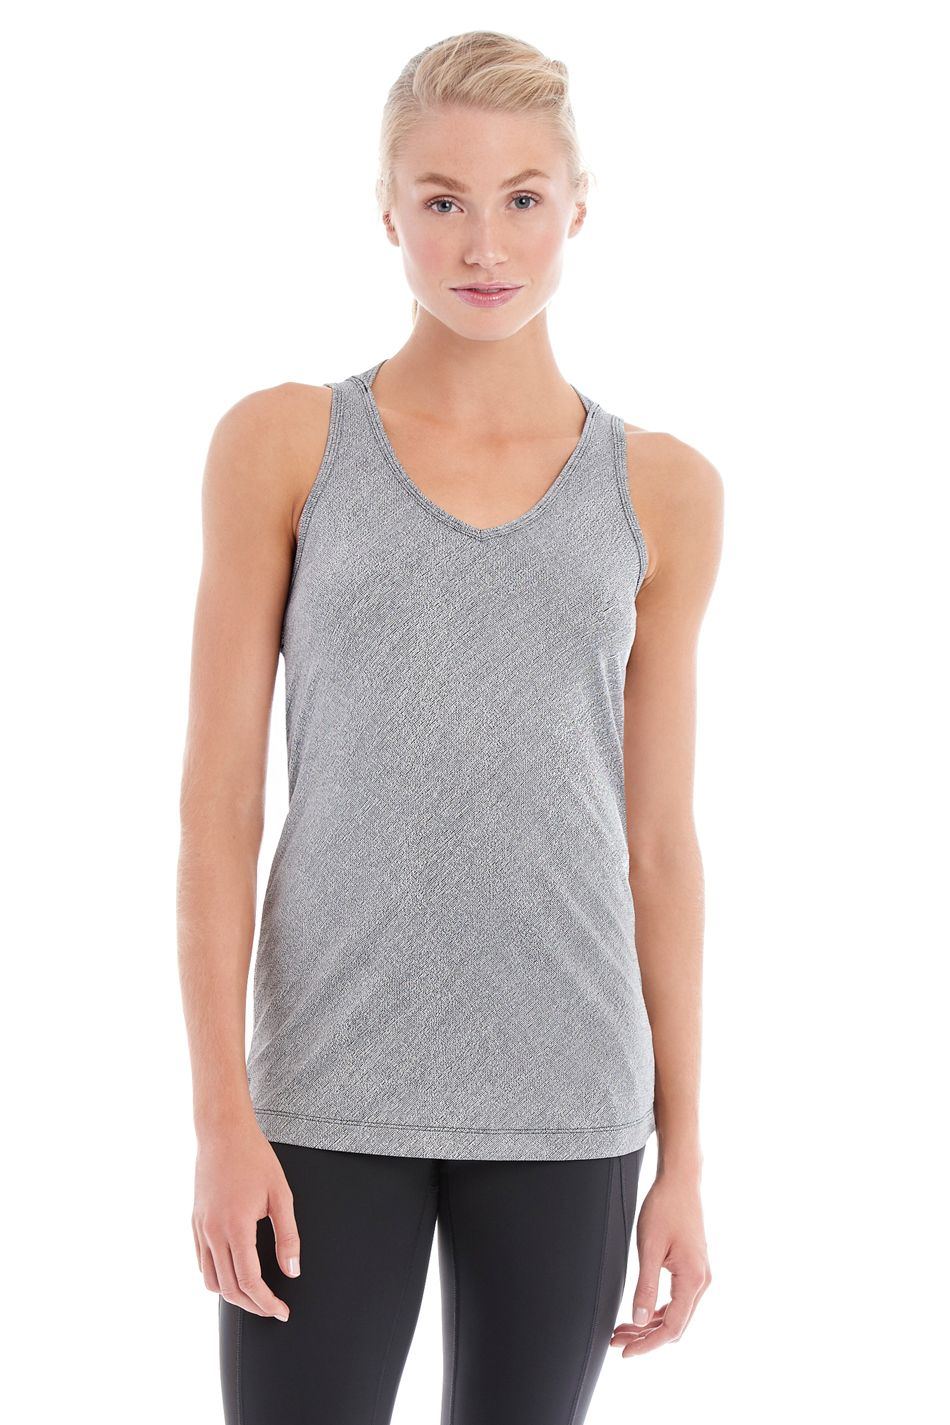 This regular fit tank has lovely back detailing that looks